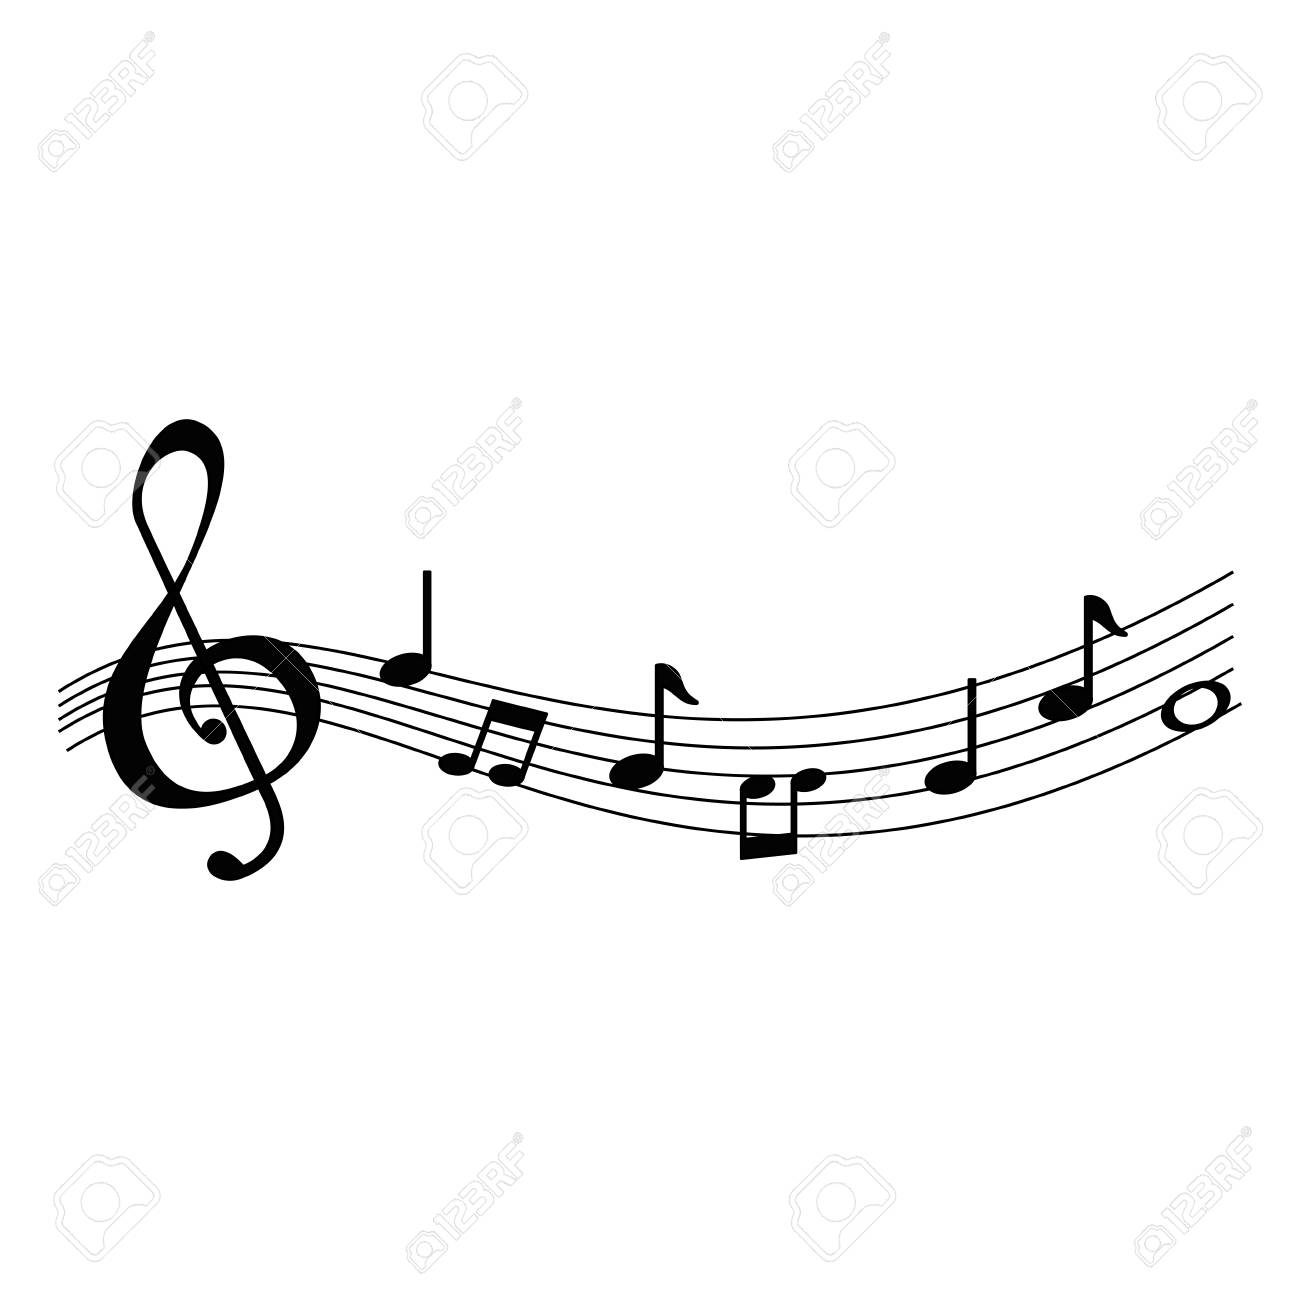 musical partiture notes icons vector illustration design - 111928447